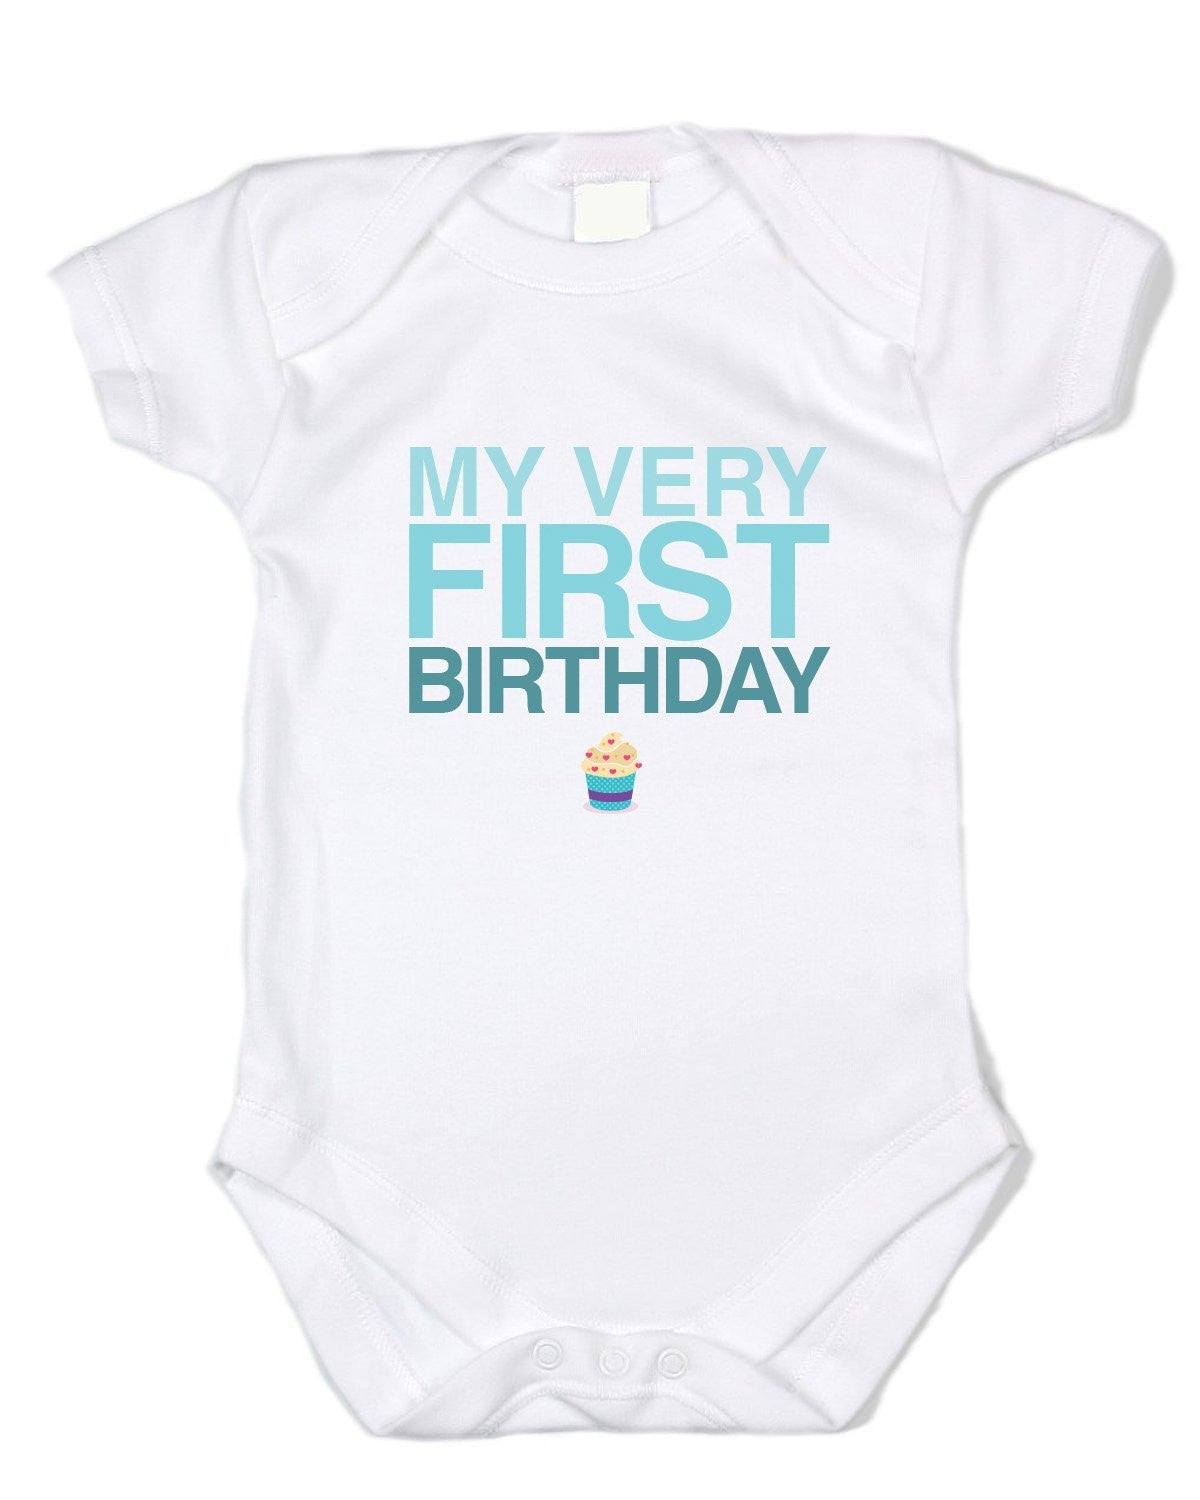 """My Very First Birthday"" Blue Text, White Bodysuit - Baby Boy Onesies"